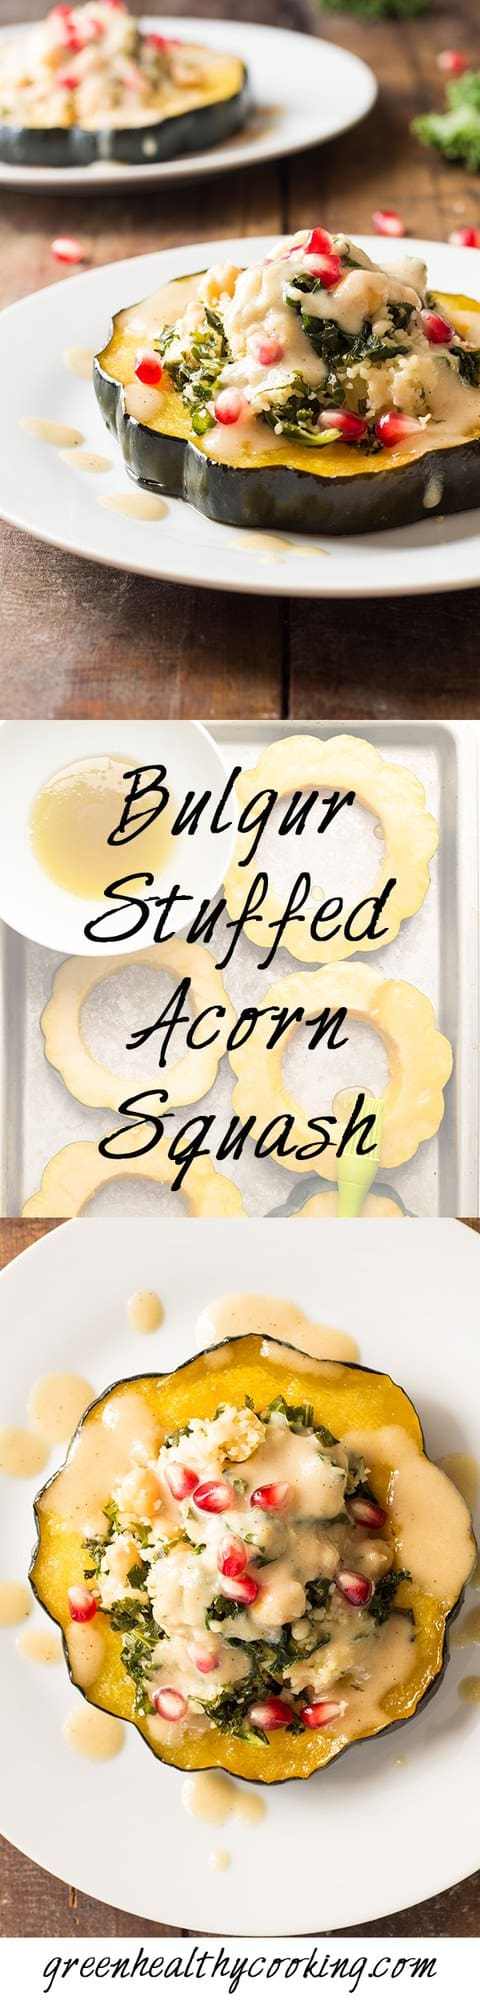 Collage of Bulgur Stuffed Acorn Squash images with text overlay for Pinterest.